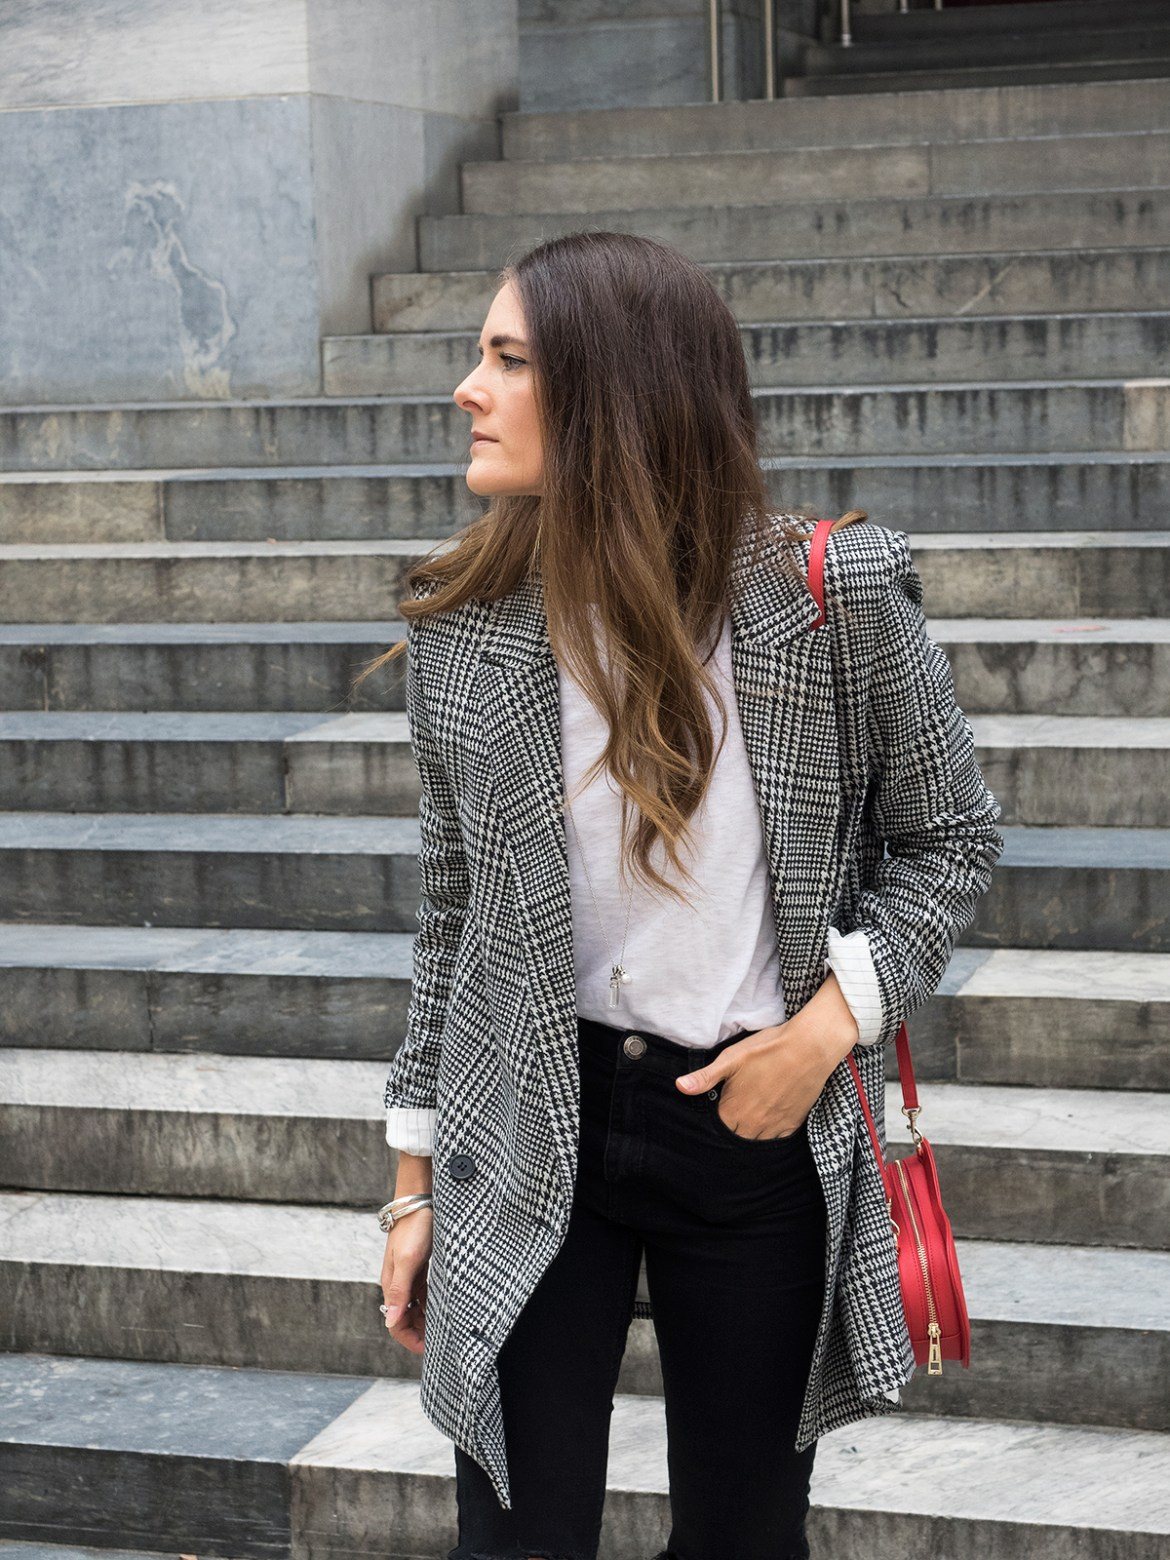 INSPIRING WIT STREET STYLE blogger in H&M check double breasted blazer, fashion menswear inspired